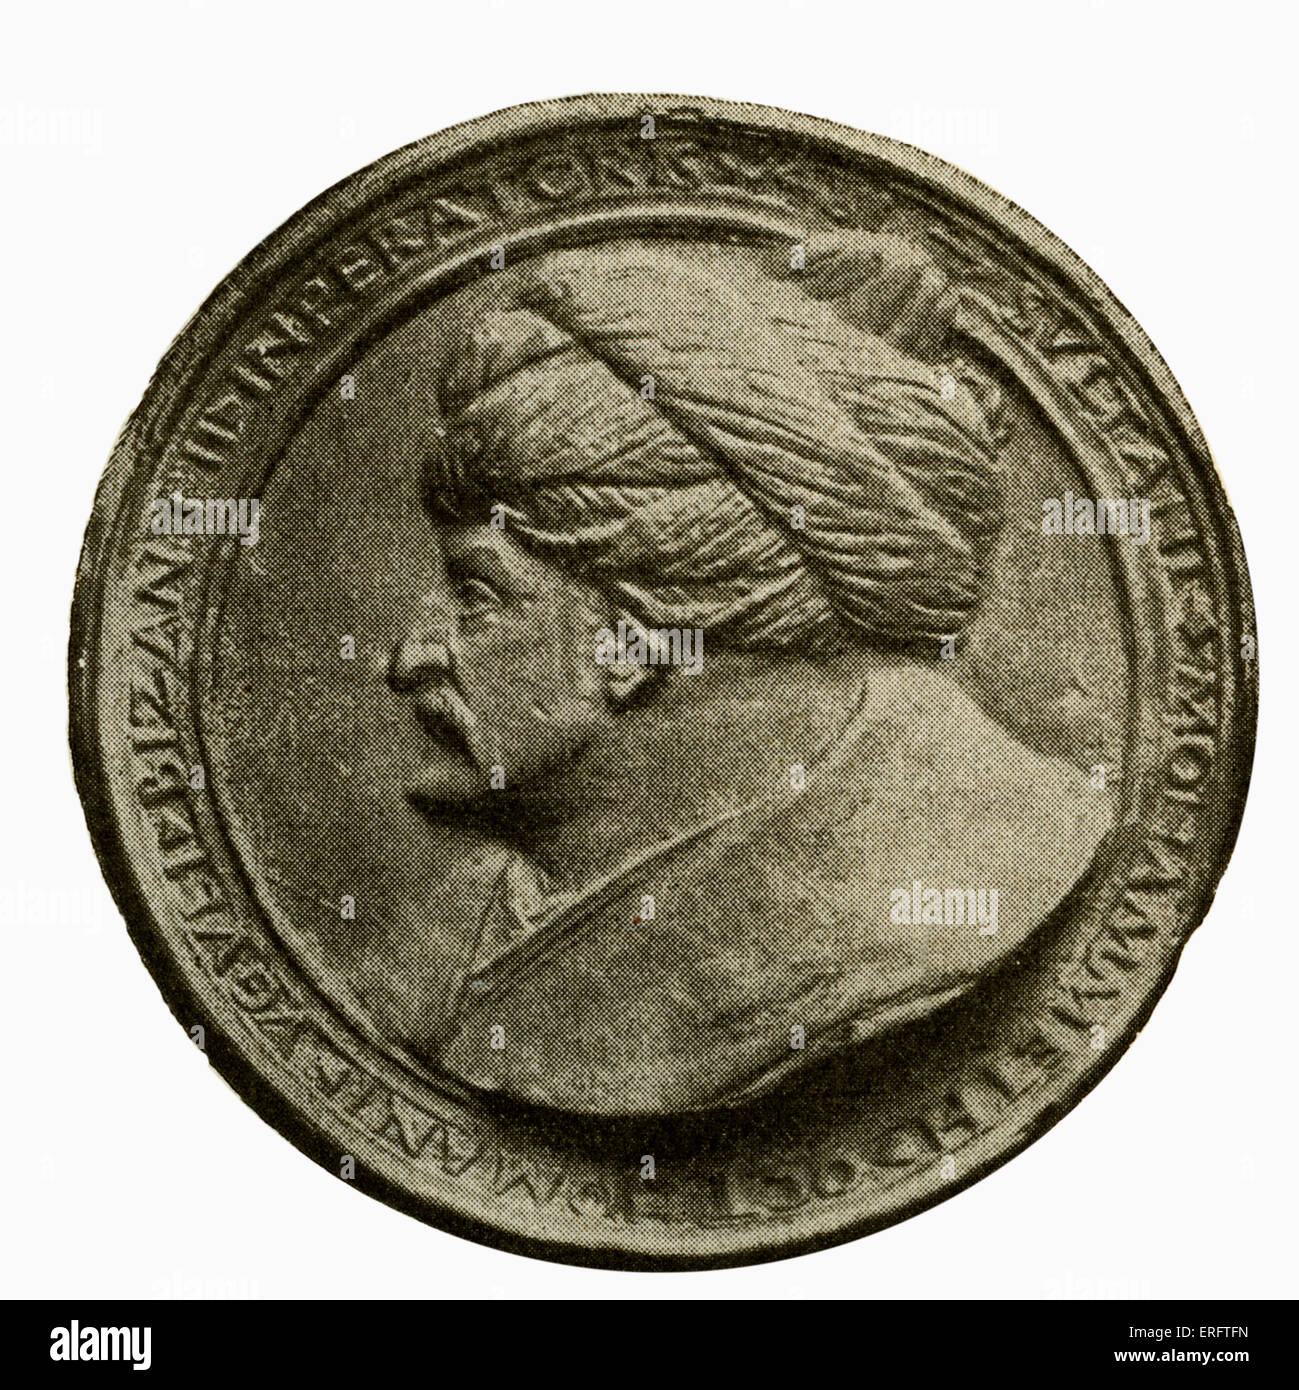 Sultan Muhammad II (also known as Mehmet II or Muhammad the Conqueror) - coin by Florentine medal maker Constantius. - Stock Image